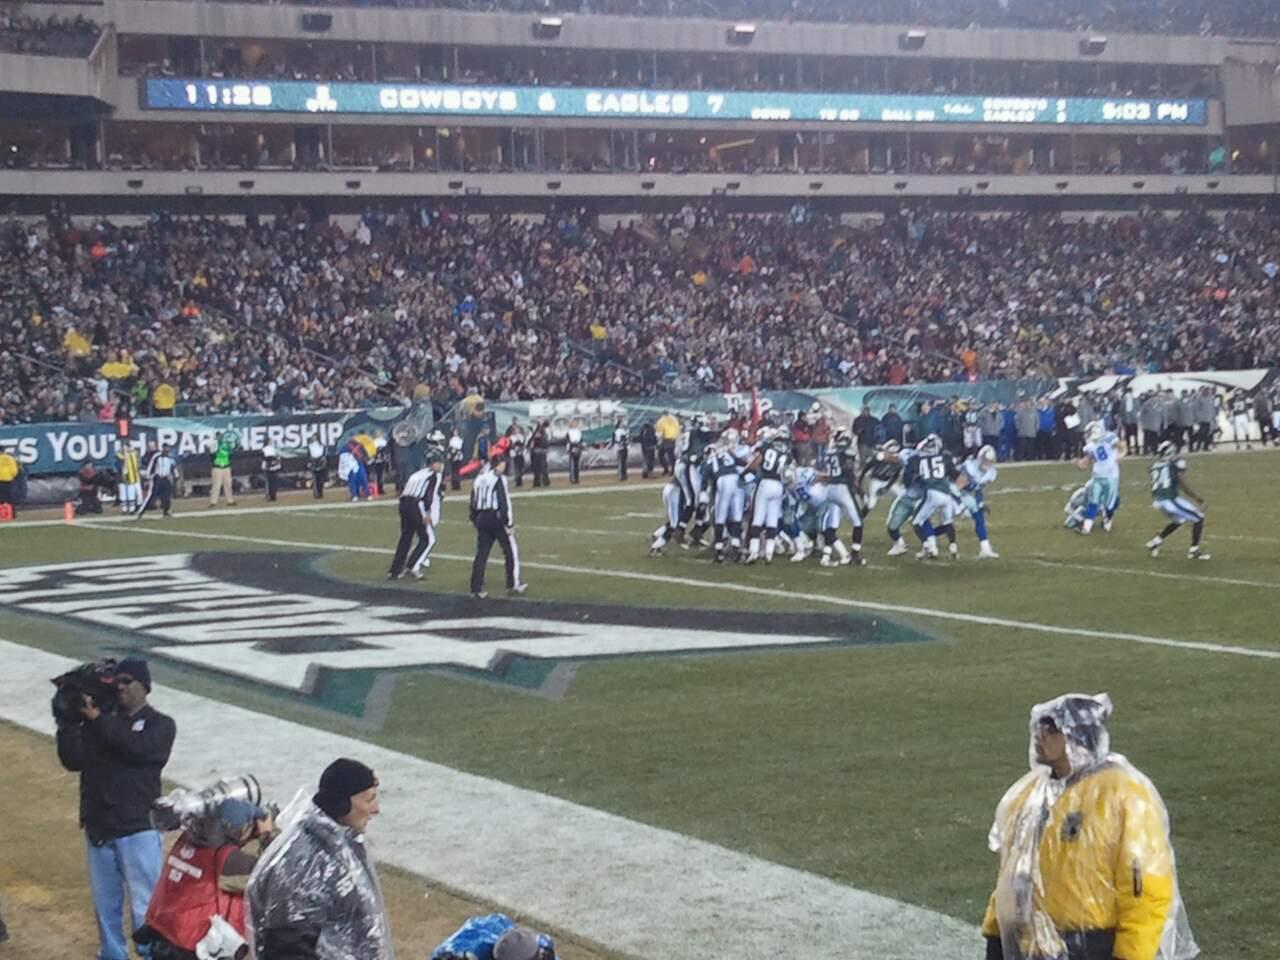 Lincoln Financial Field Section 114 Row 5 Seat 7